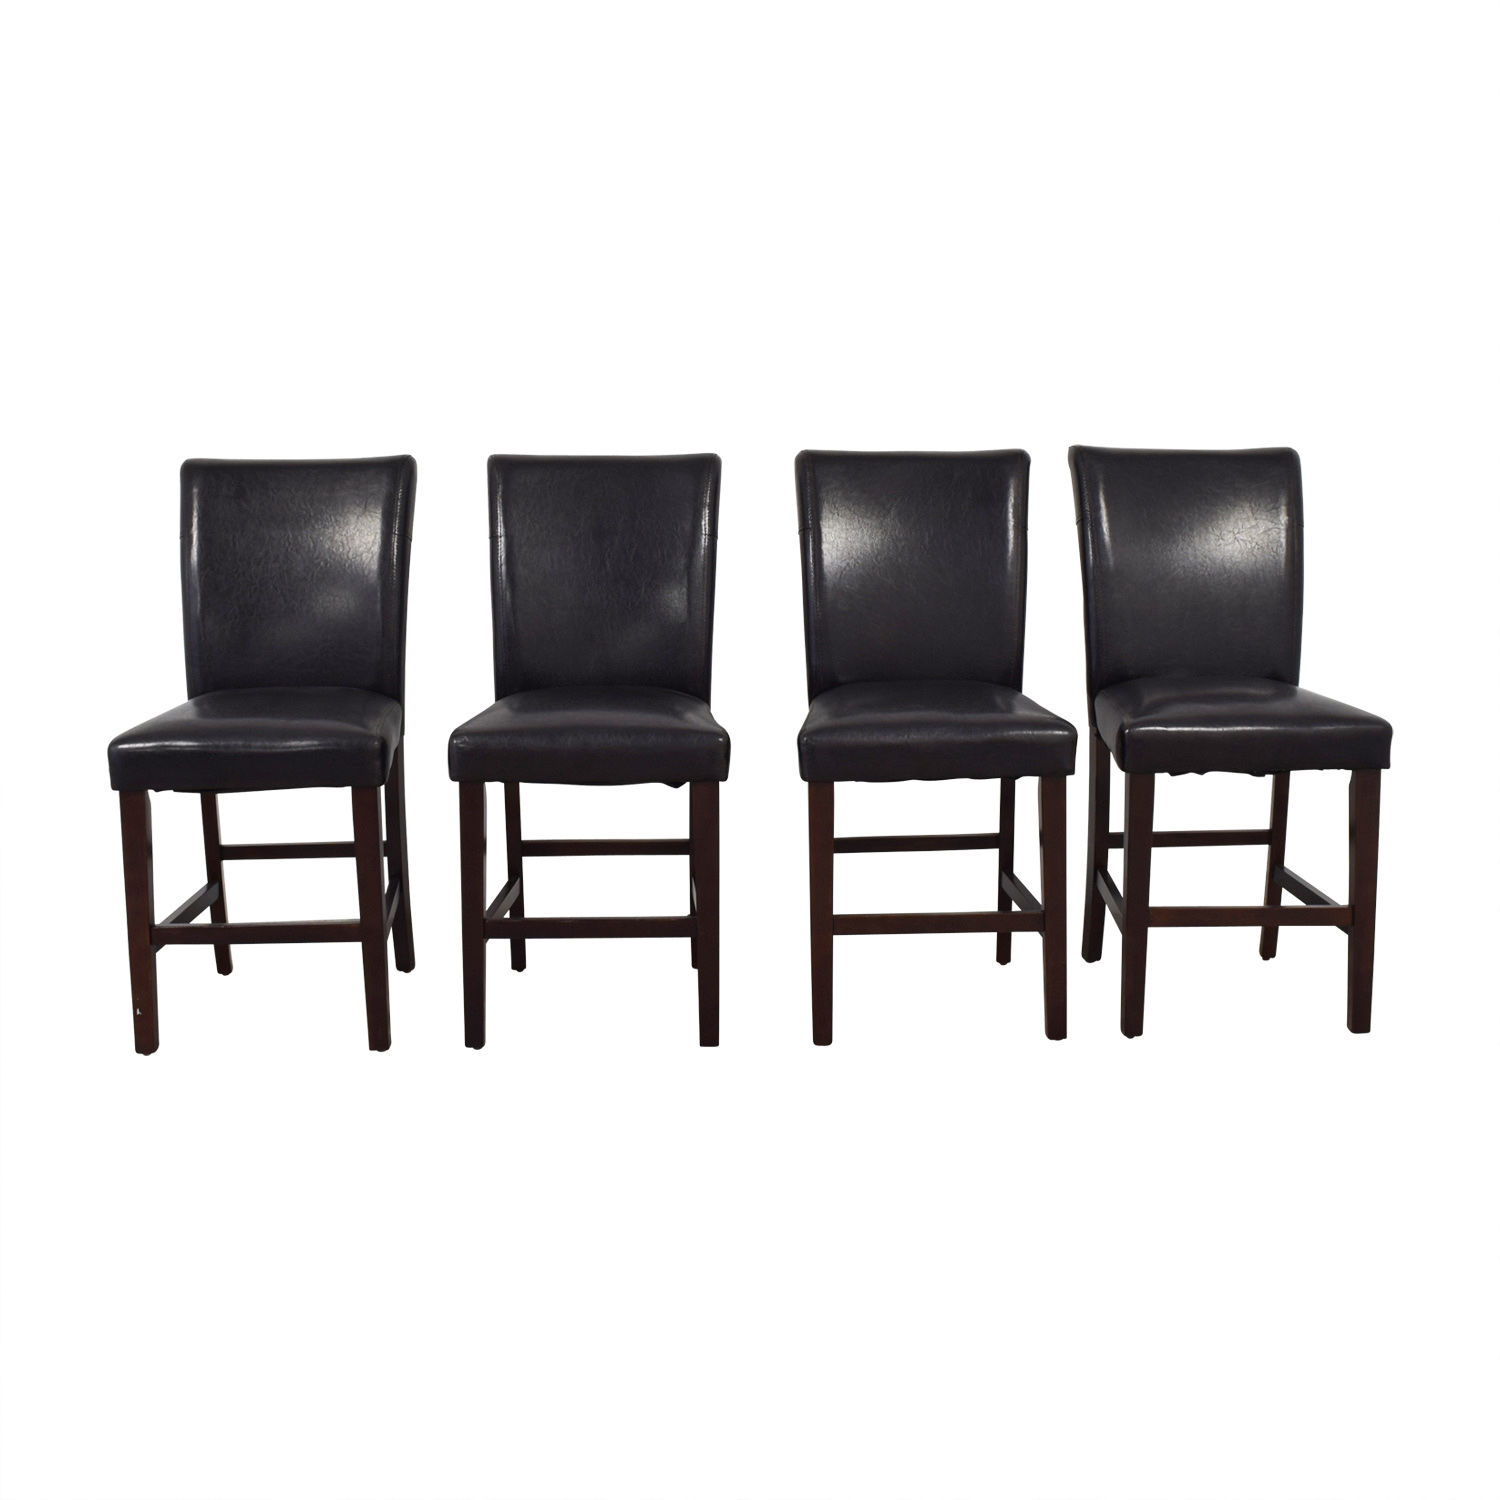 Raymour & Flanigan Raymour & Flanigan Brown Leather Dining Chairs second hand